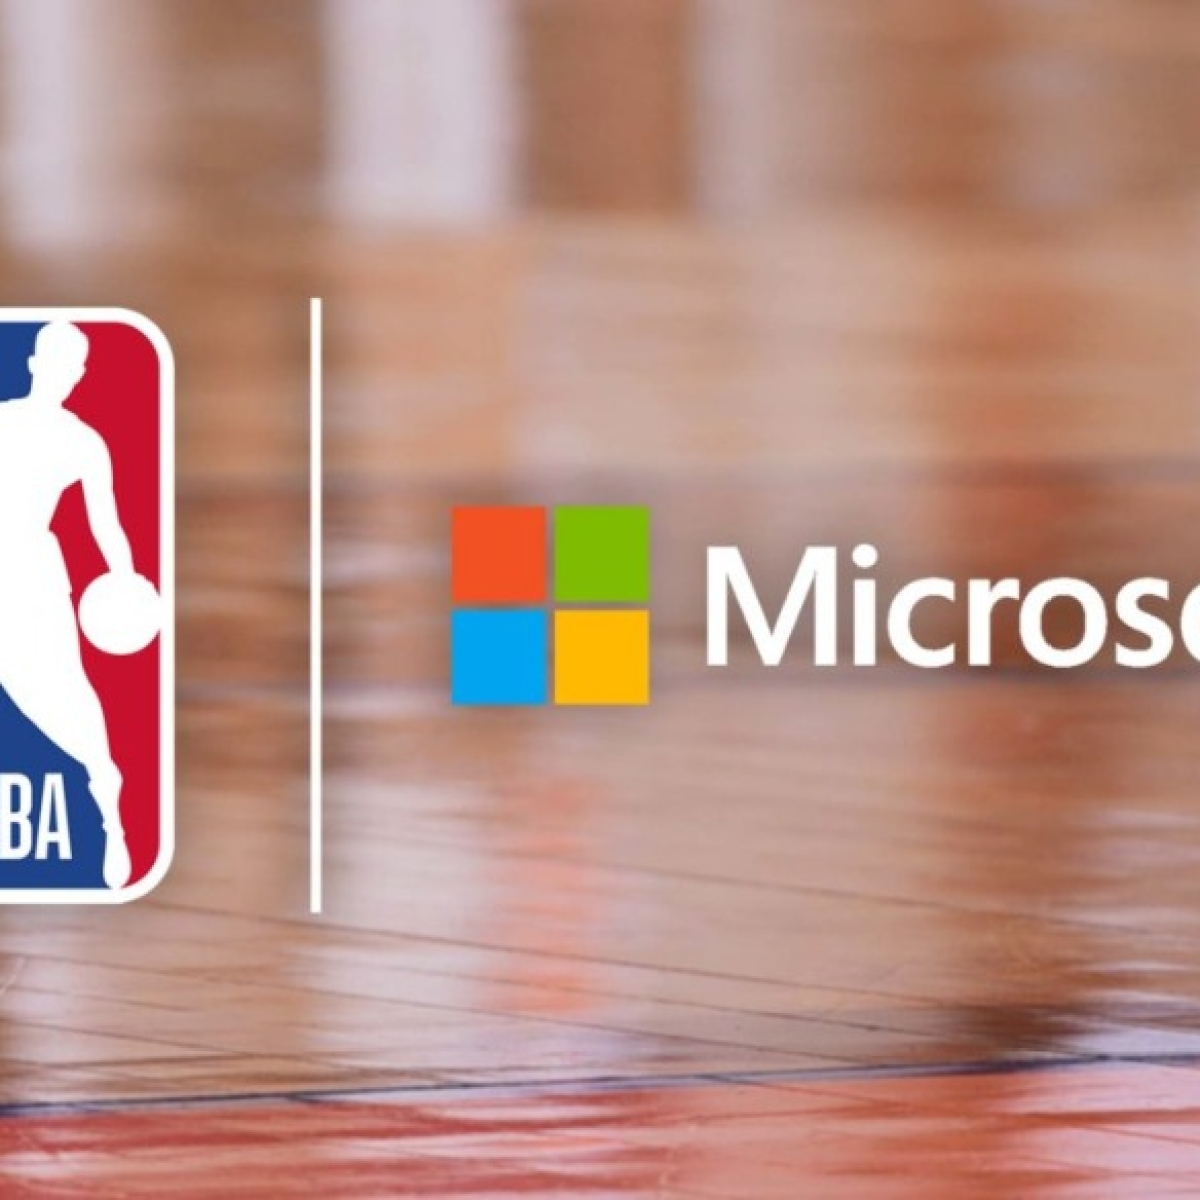 NBA announces multi-year partnership with Microsoft to personalise fan experience